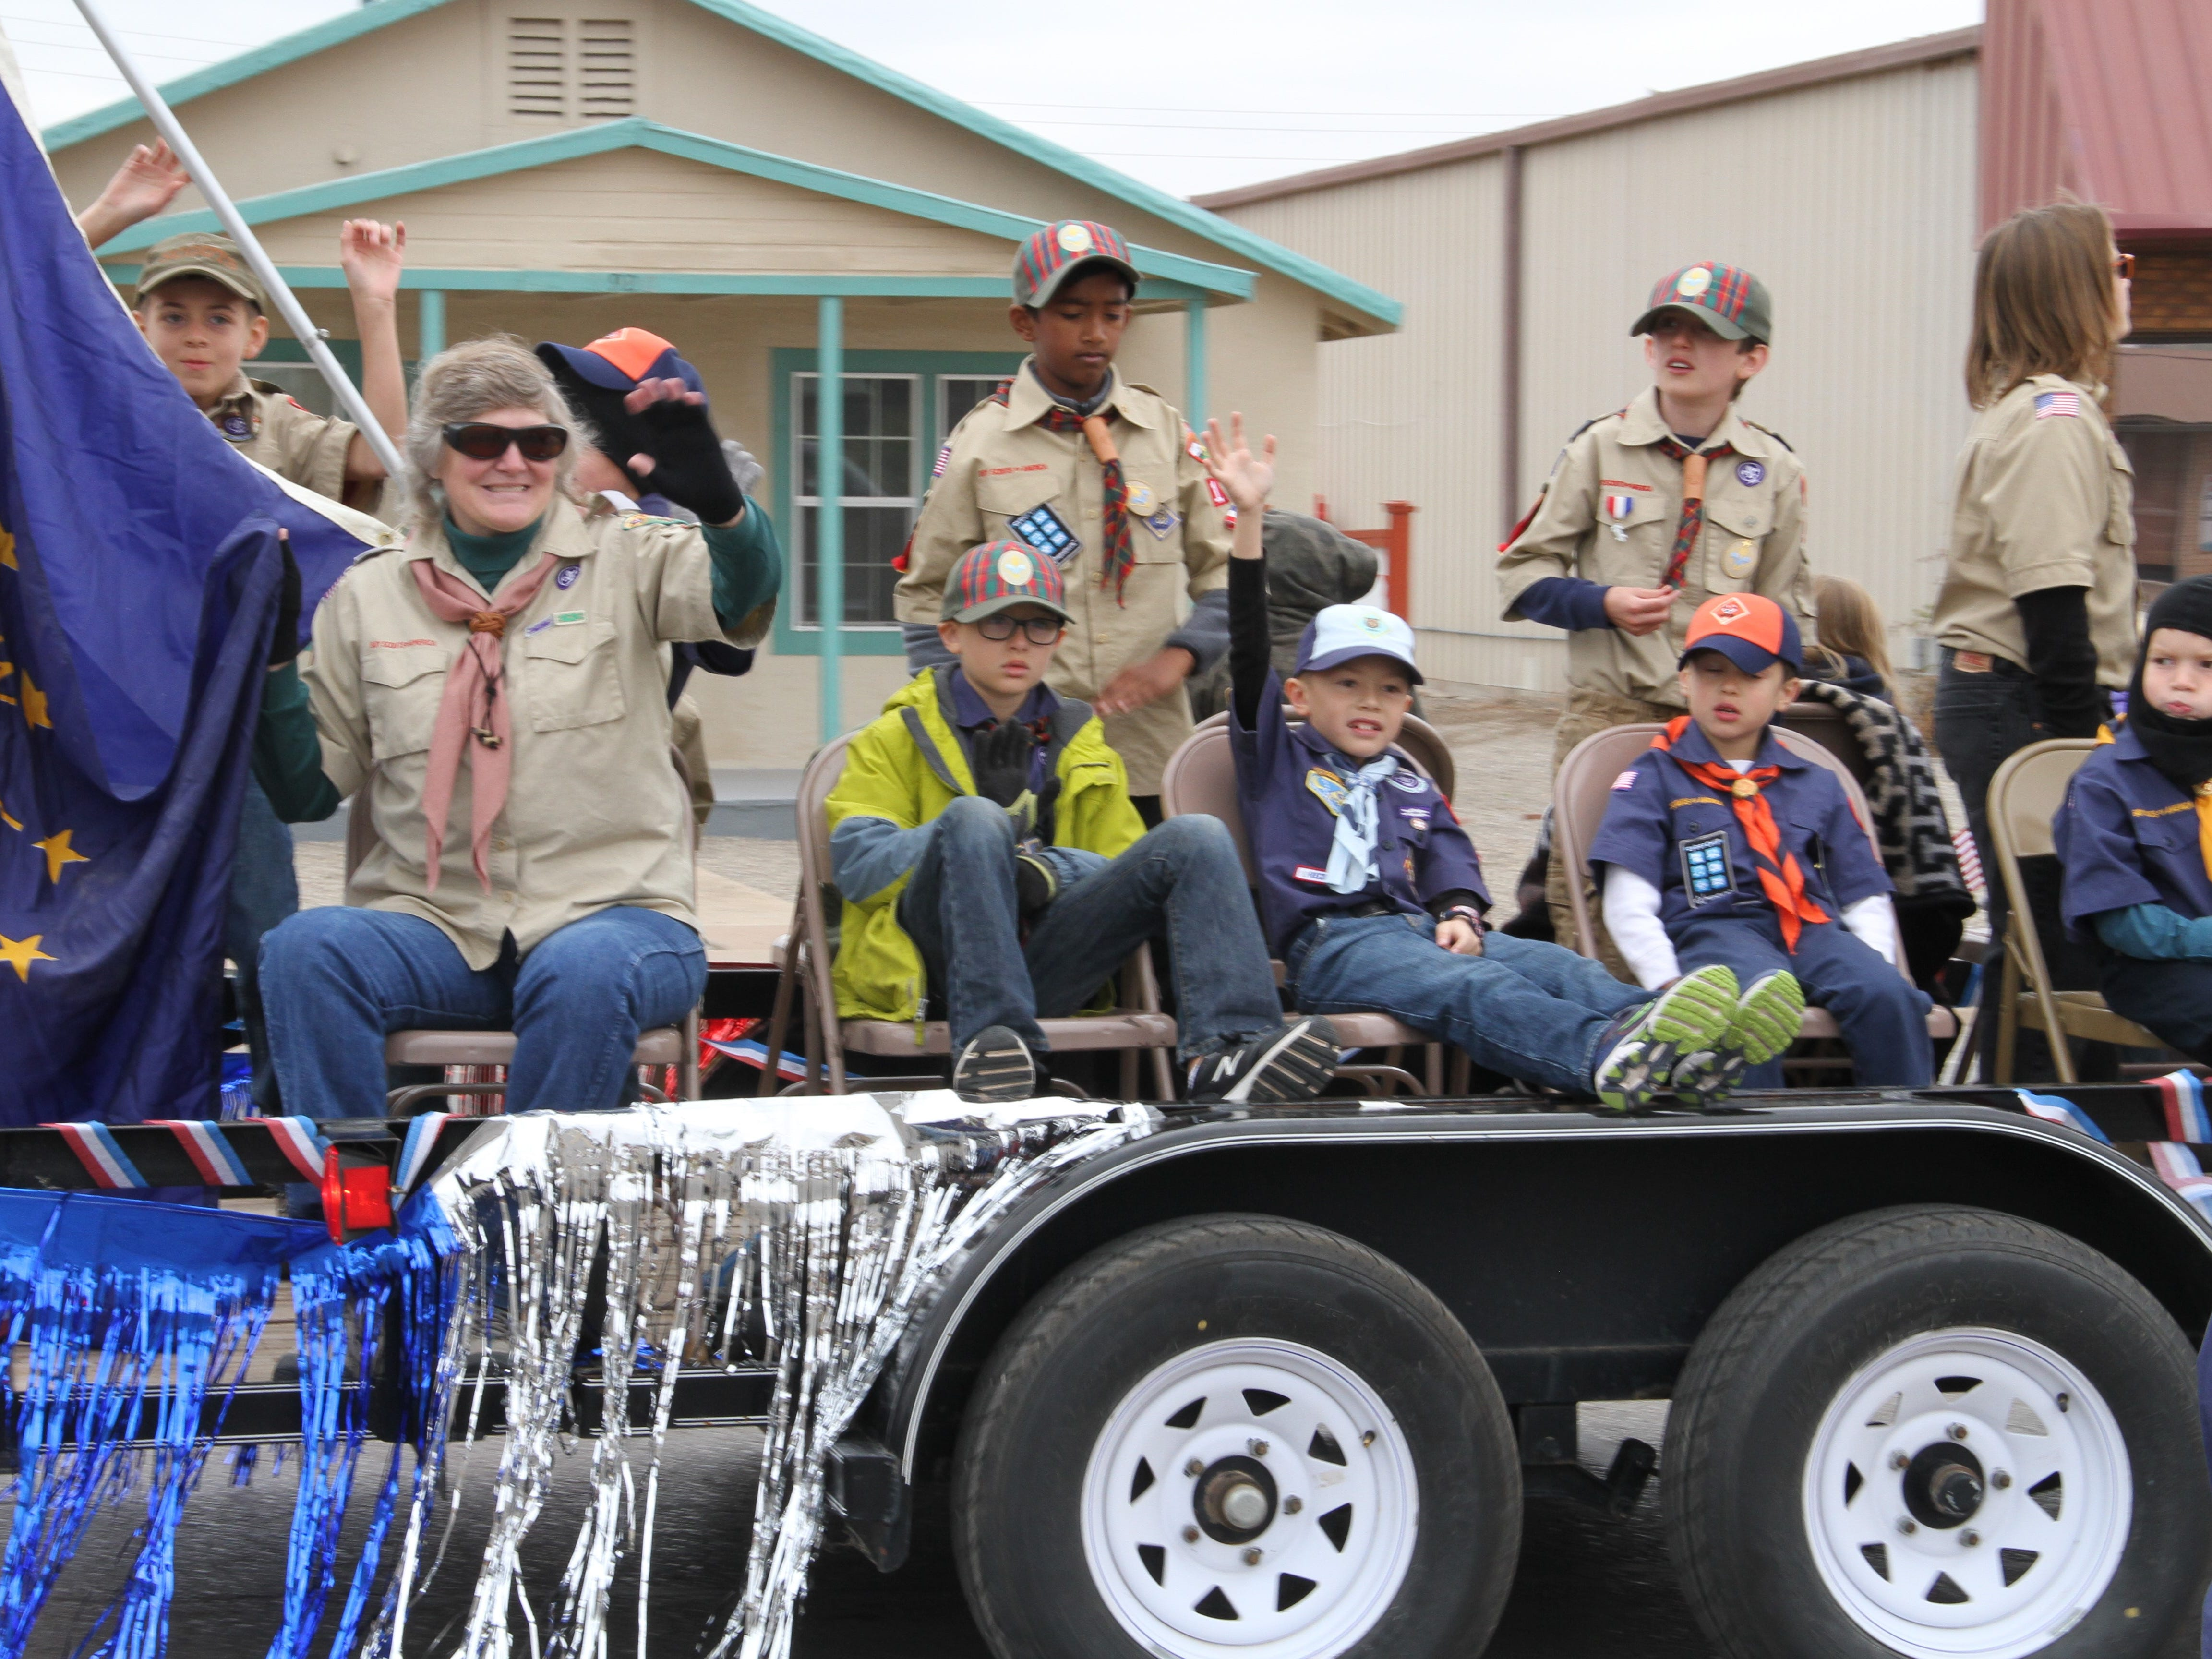 The Boy Scouts and Cub Scouts waive to the crowd during Alamogordo's Veterans Day Parade Saturday.